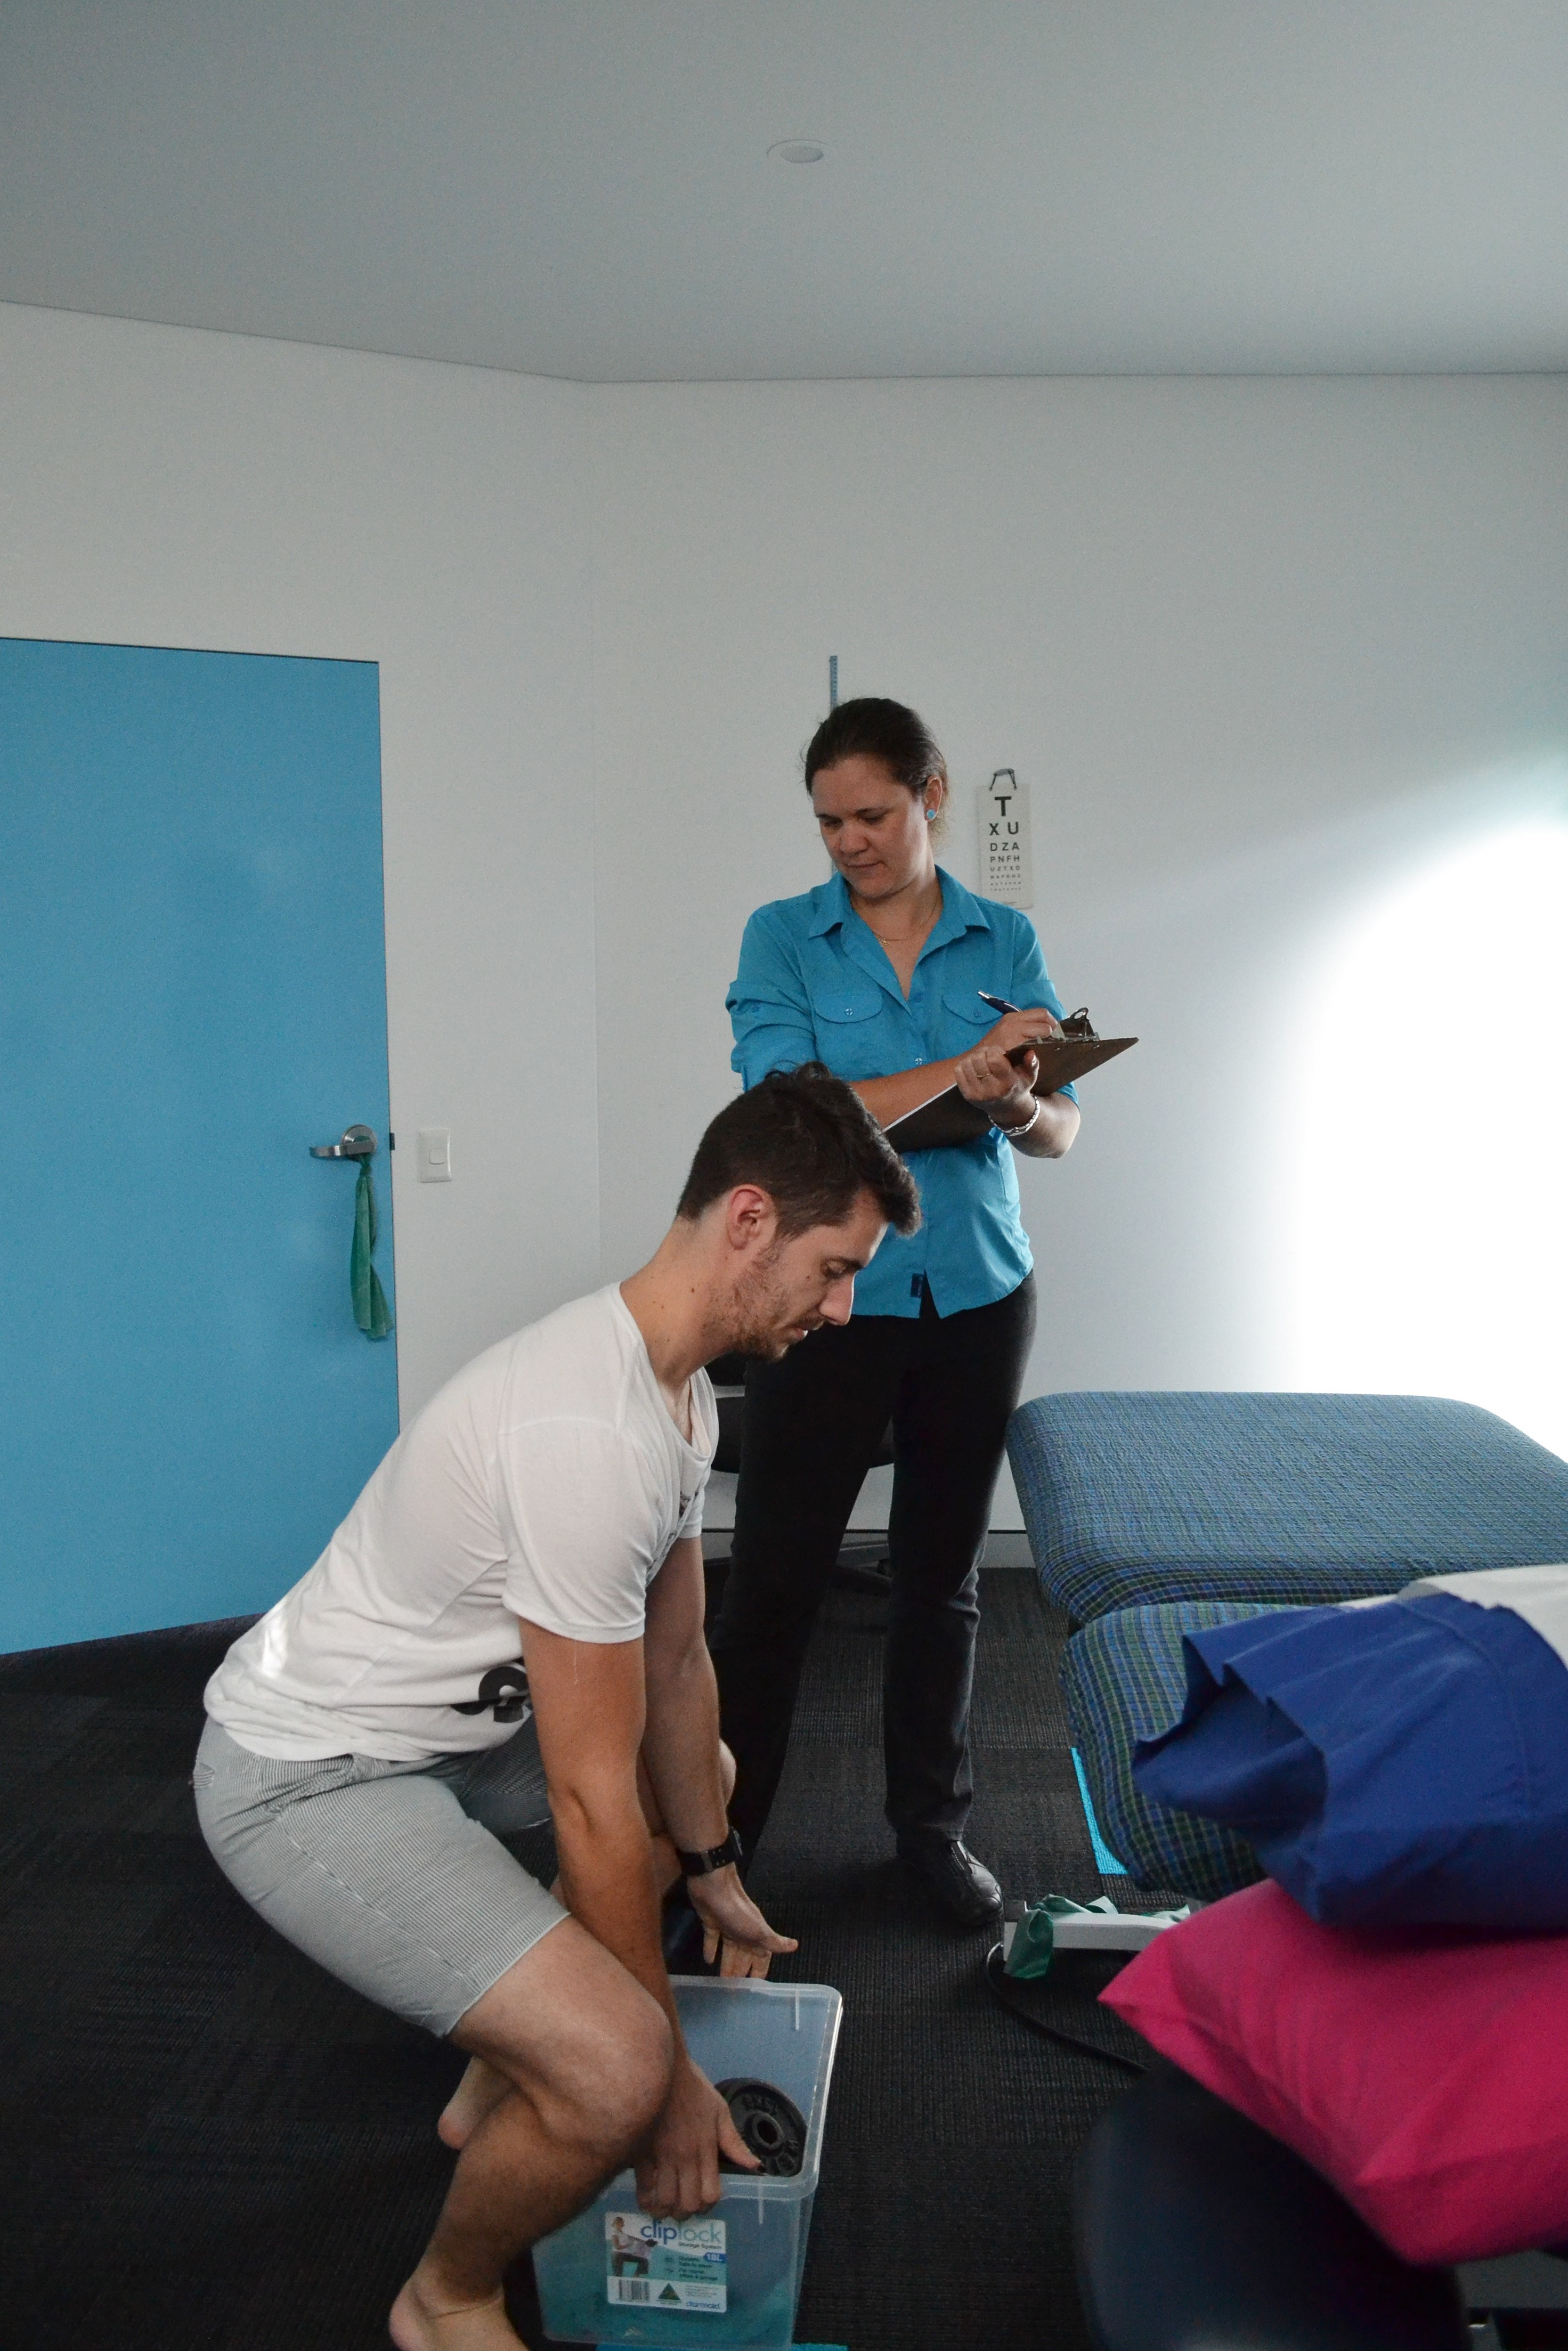 toowoomba physiotherapy massage centre physio massage functional employment assessments